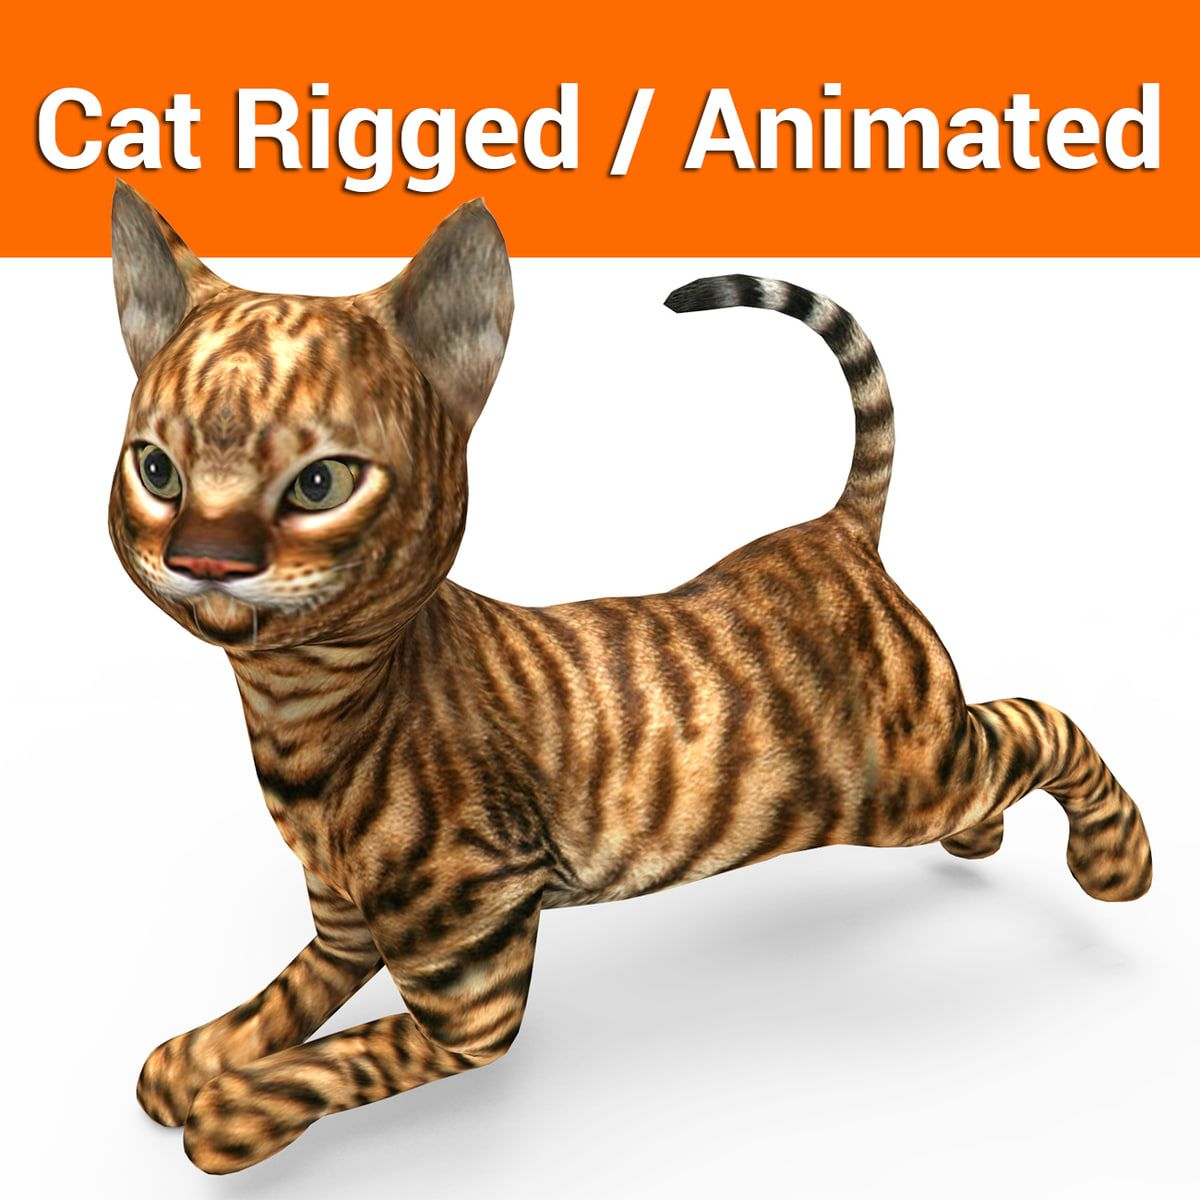 Cat Rigged Animation 3d 3ds 3d Model Cats And Kittens Cat Facts Cat Shots